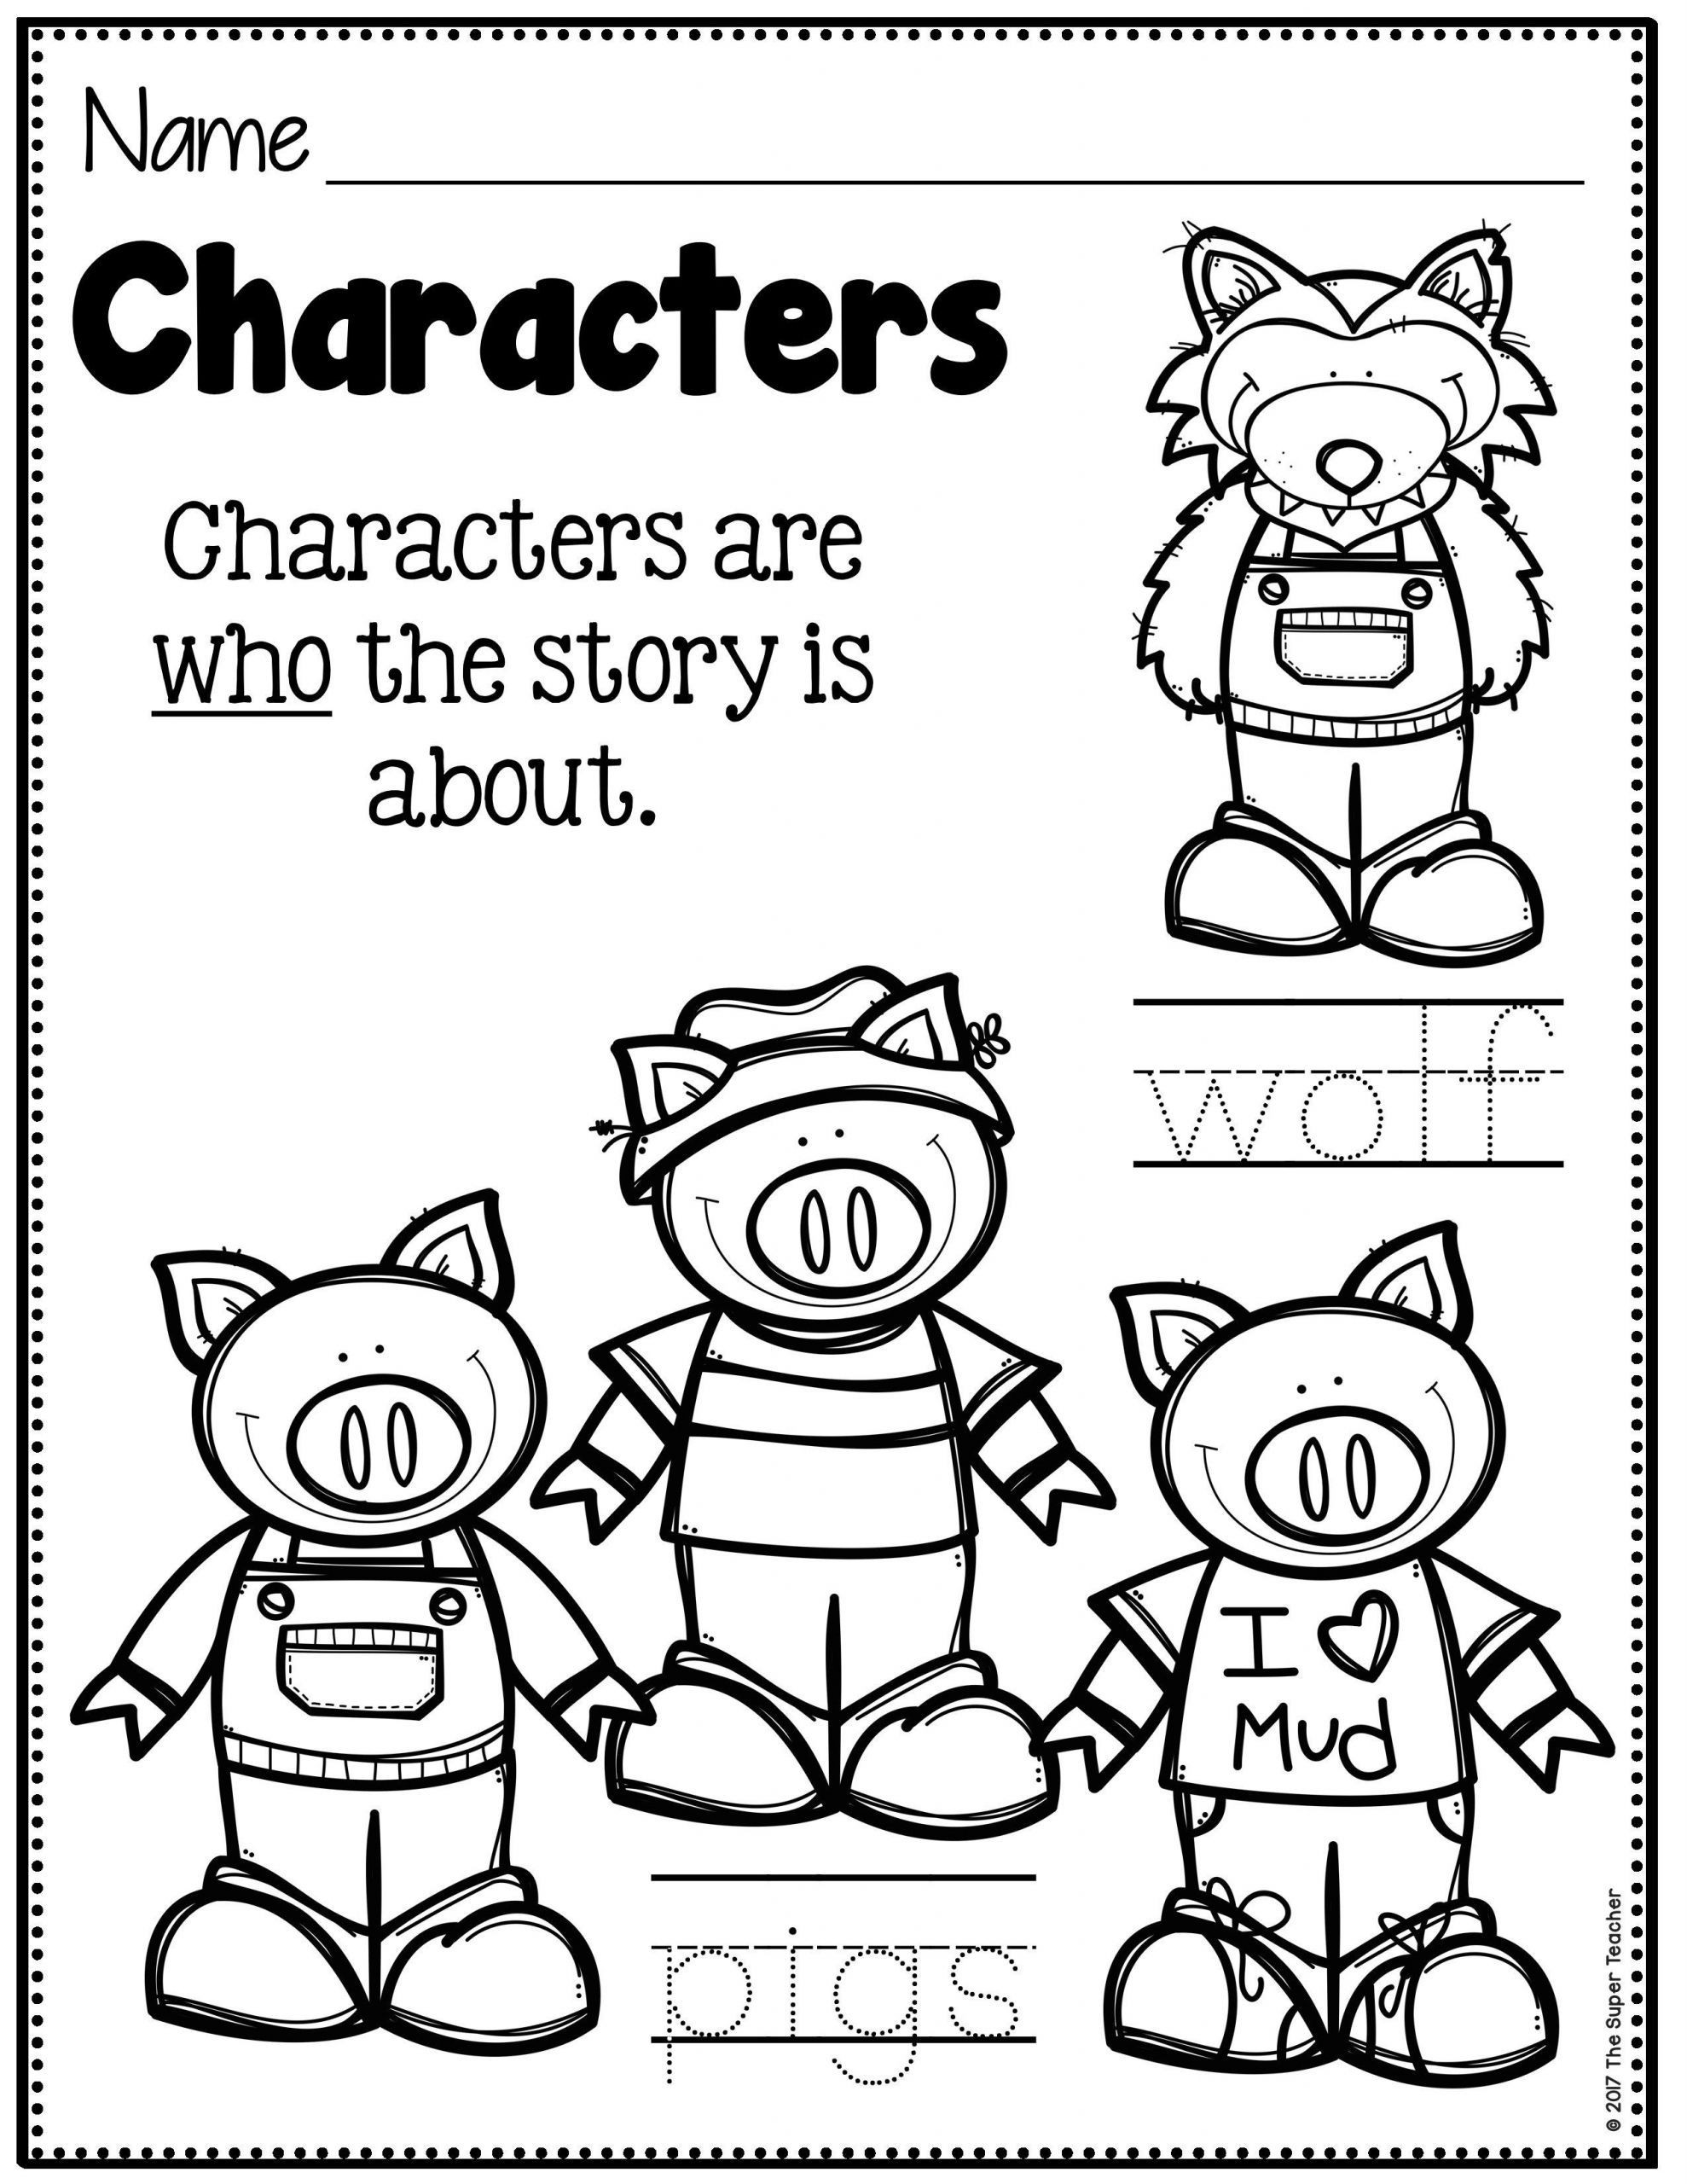 Sequence Worksheets First Grade Prime Sequence events Worksheets 1st Grade First